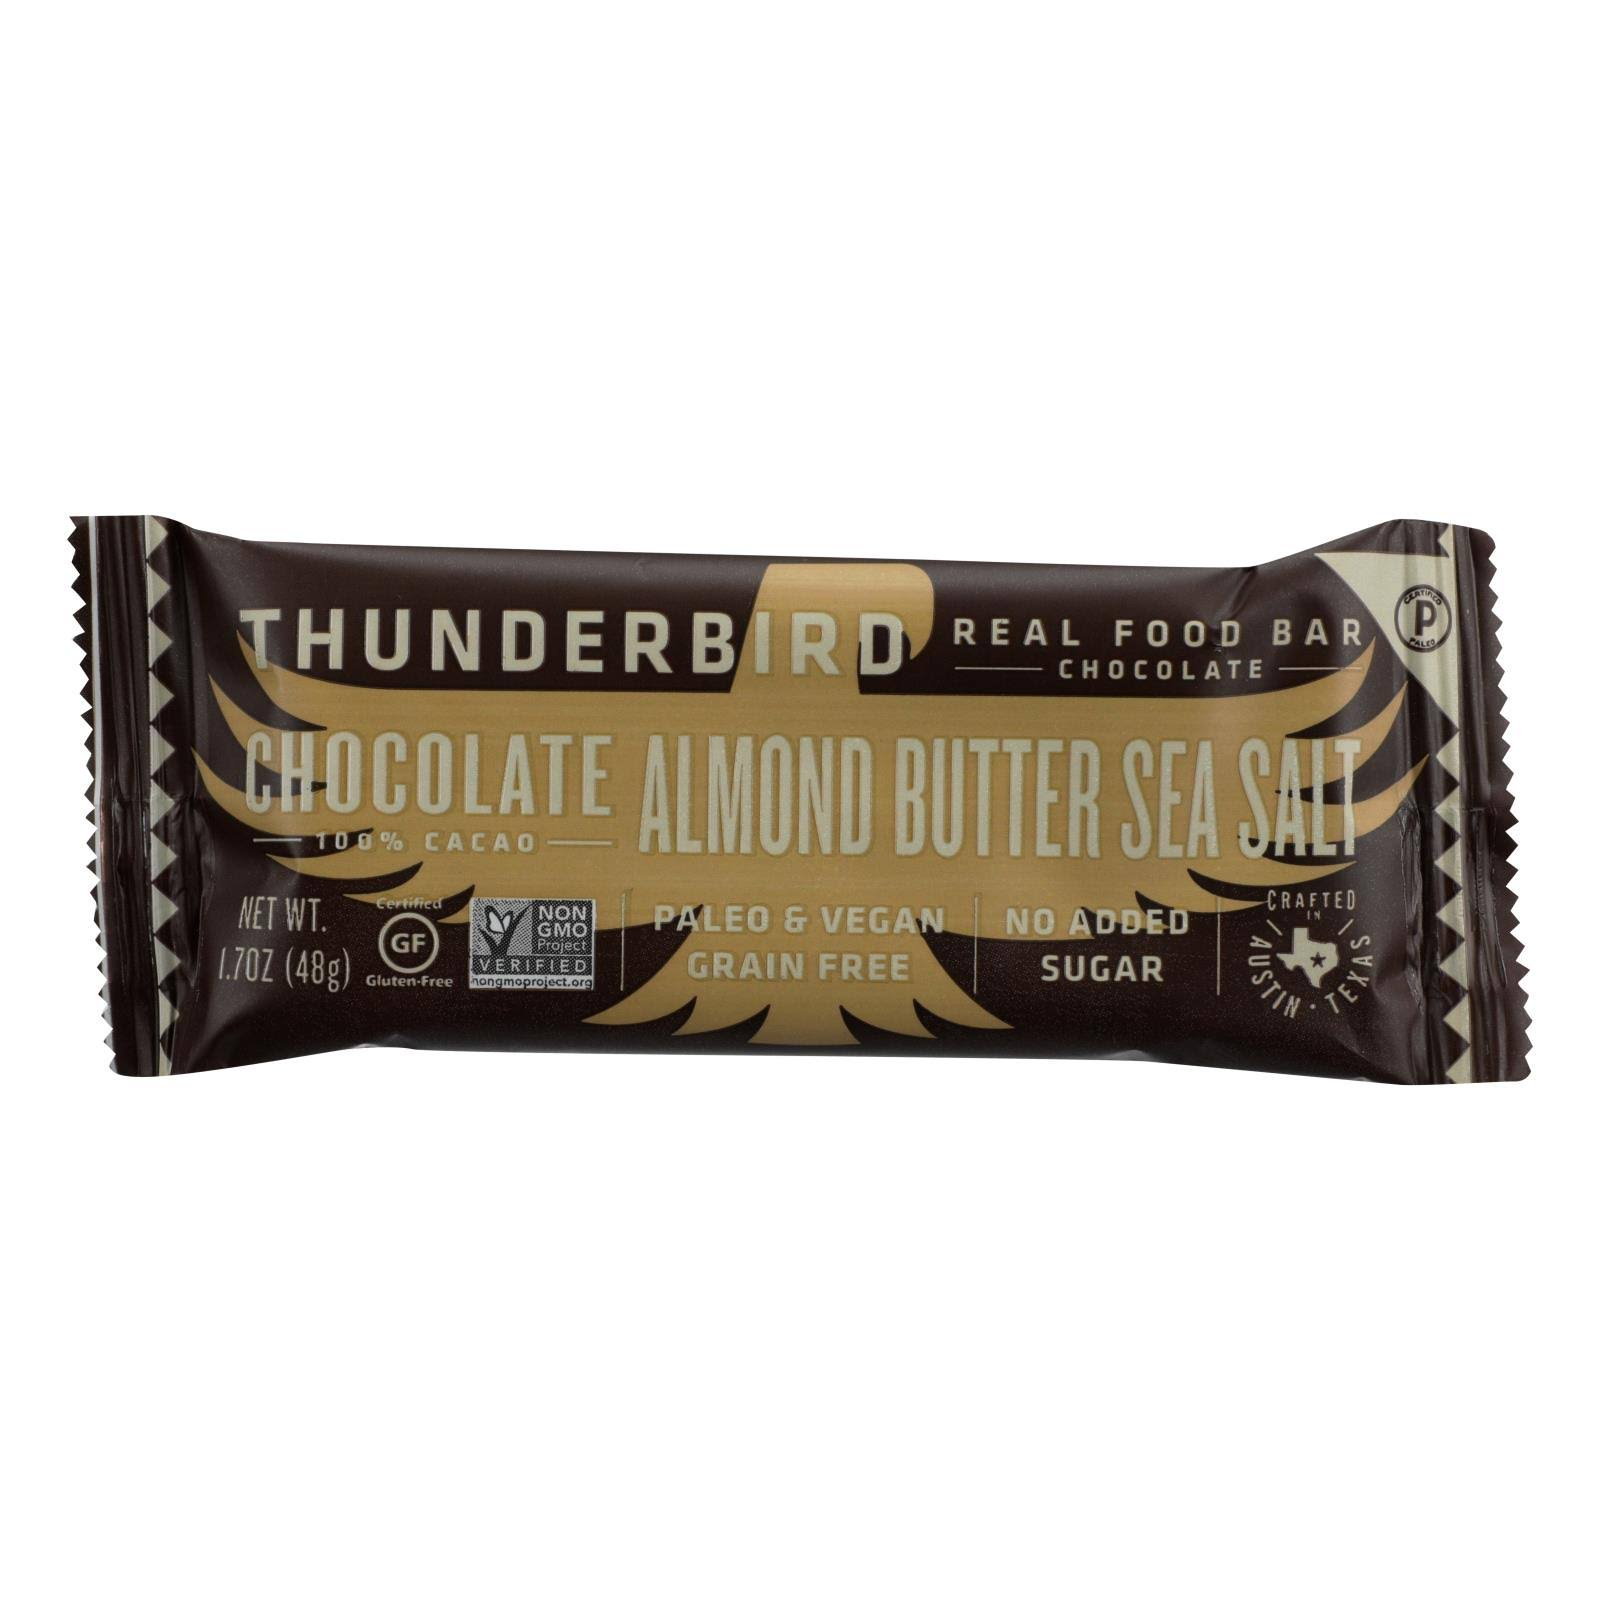 Thunderbird Chocolate Bar, Almond Butter Sea Salt - 1.7 oz